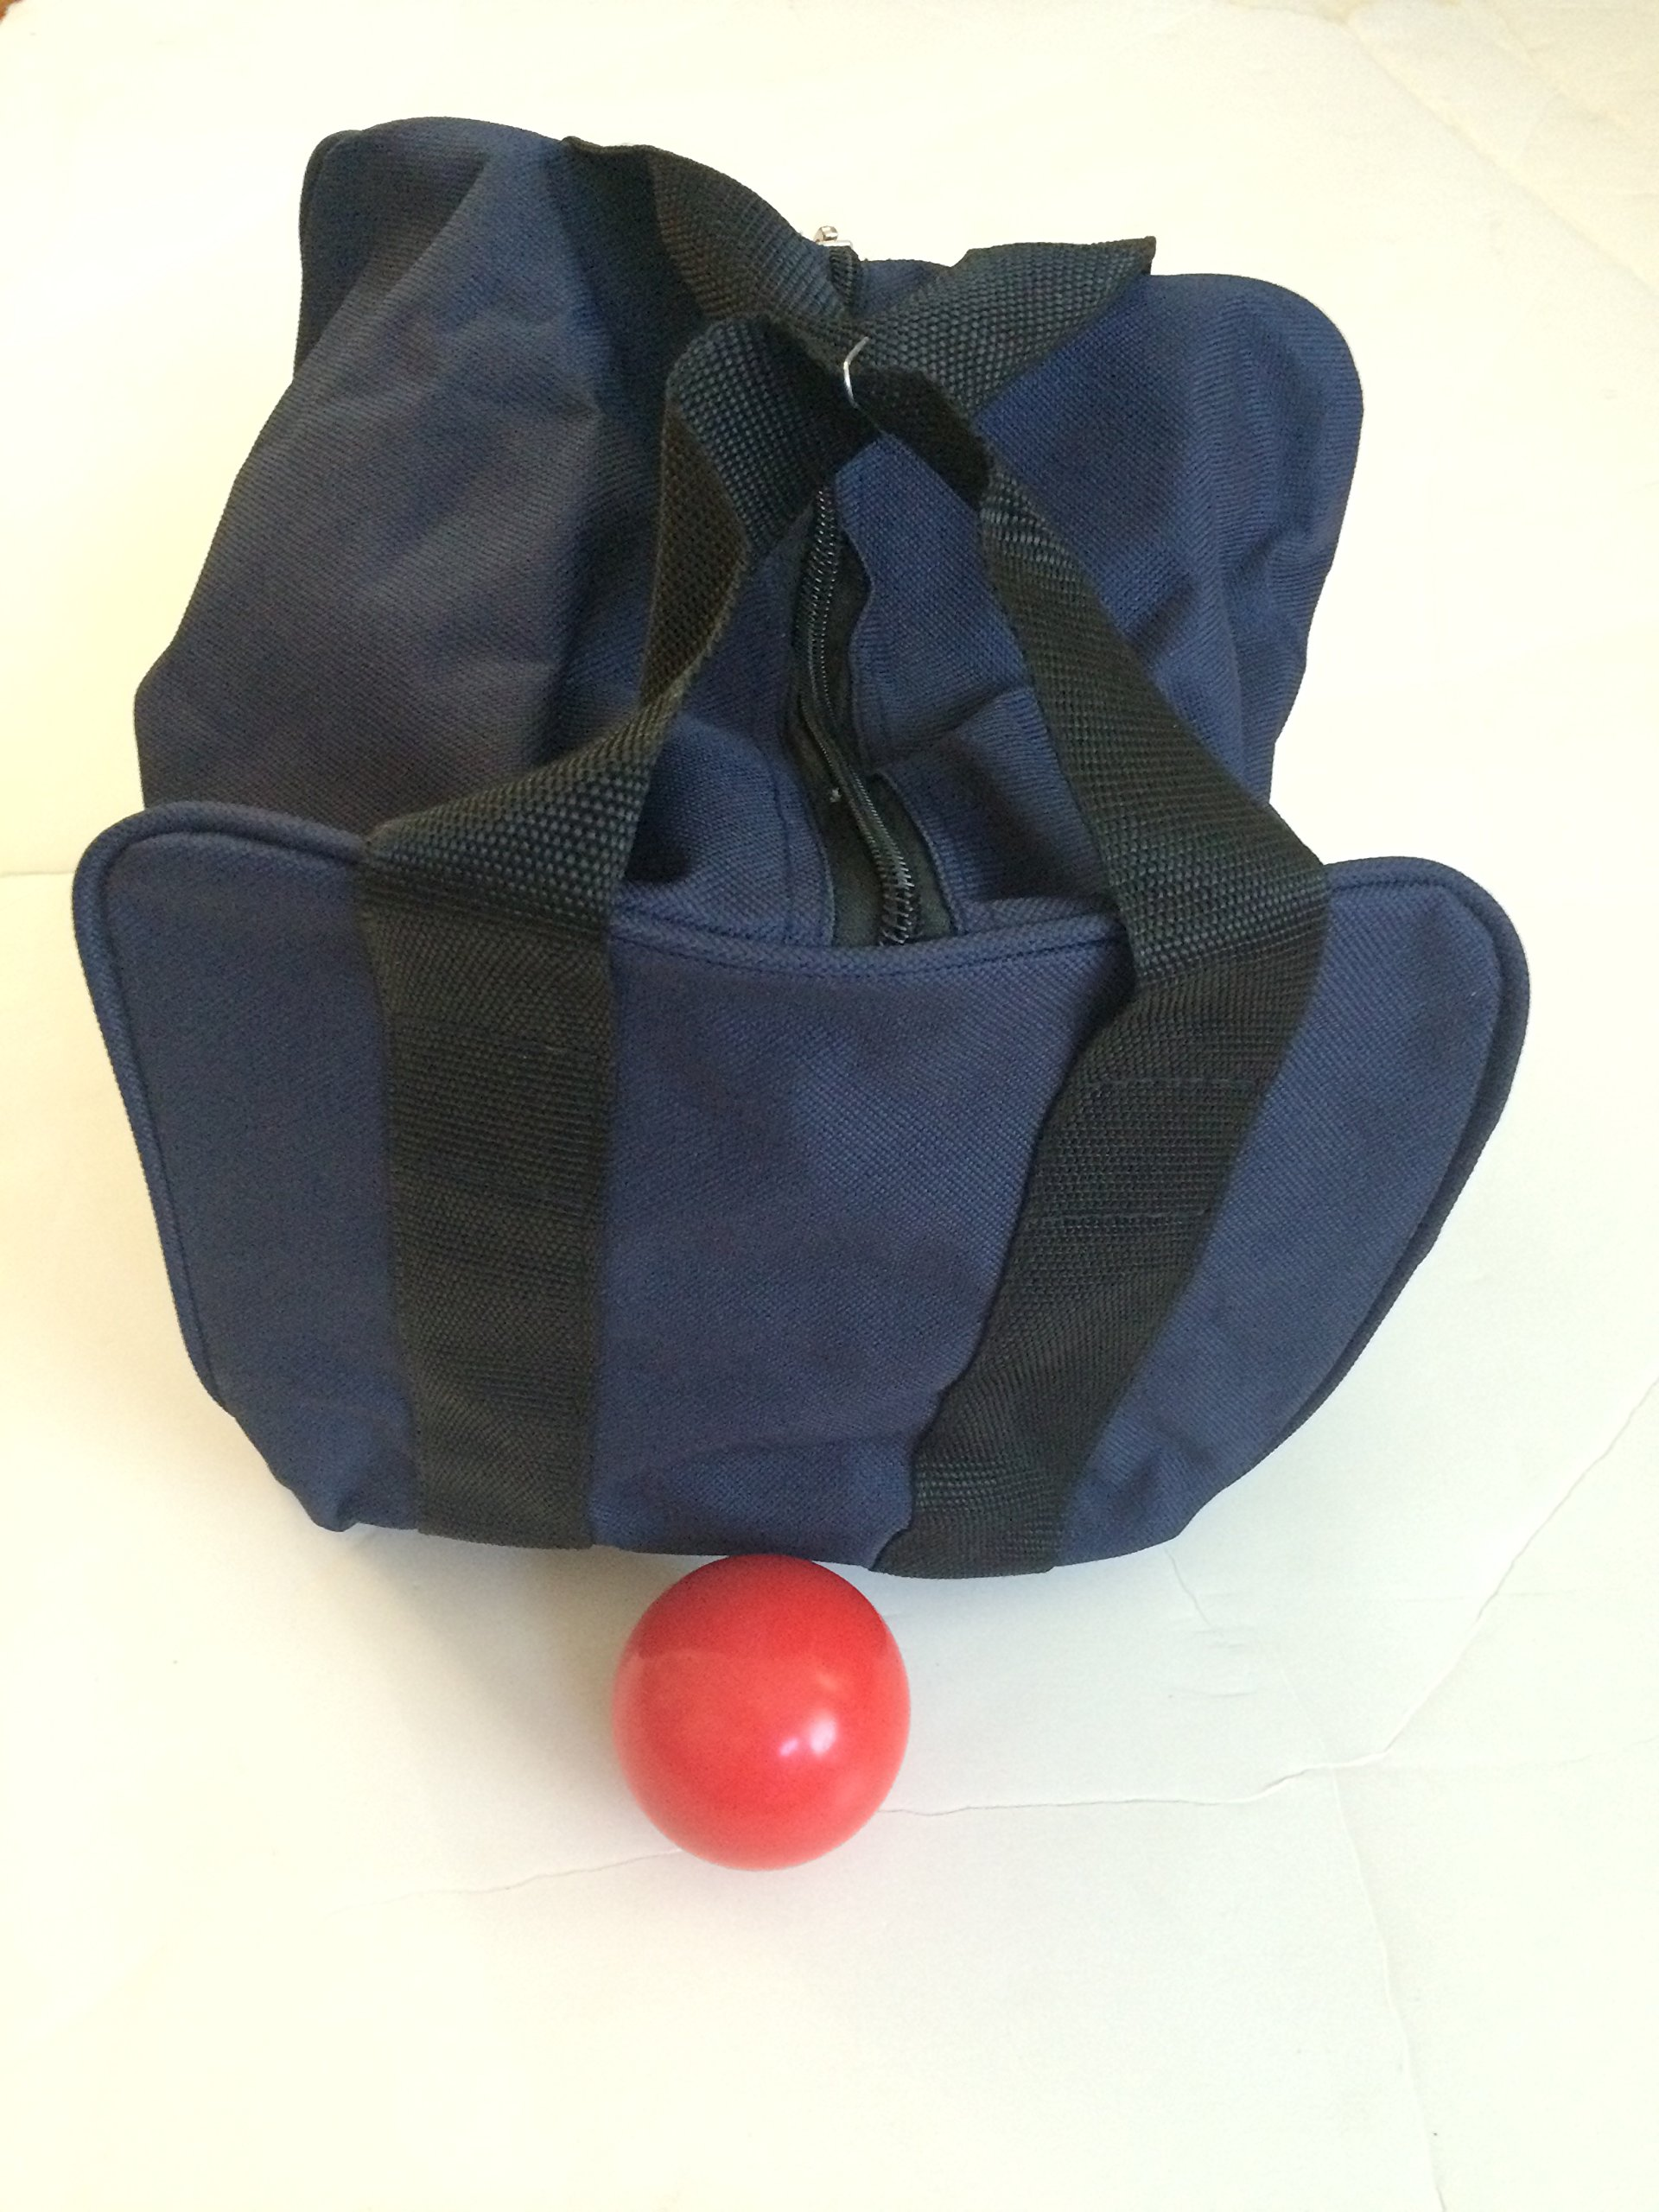 Unique Bocce Accessories Package - Extra Heavy Duty Nylon Bocce Bag (Blue with Black Handles) and Red pallina by BuyBocceBalls